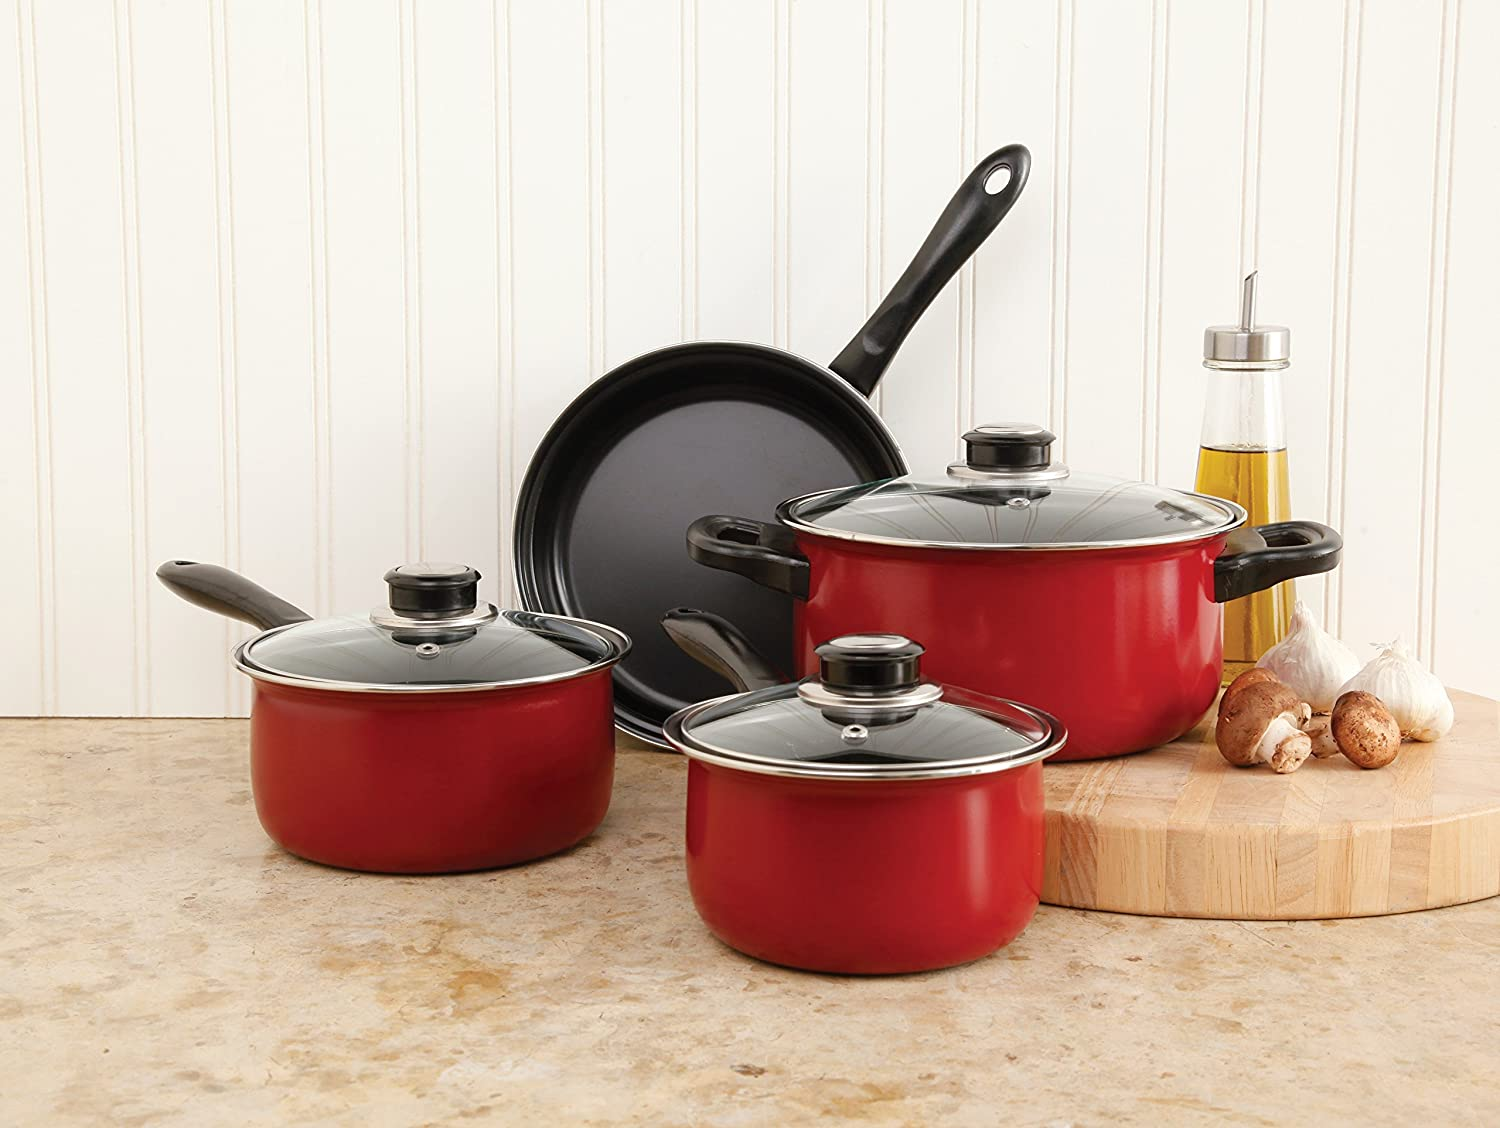 Sunbeam 72253.07 Newbrook 7-Piece Cookware Set, Black Gibson Overseas Inc.